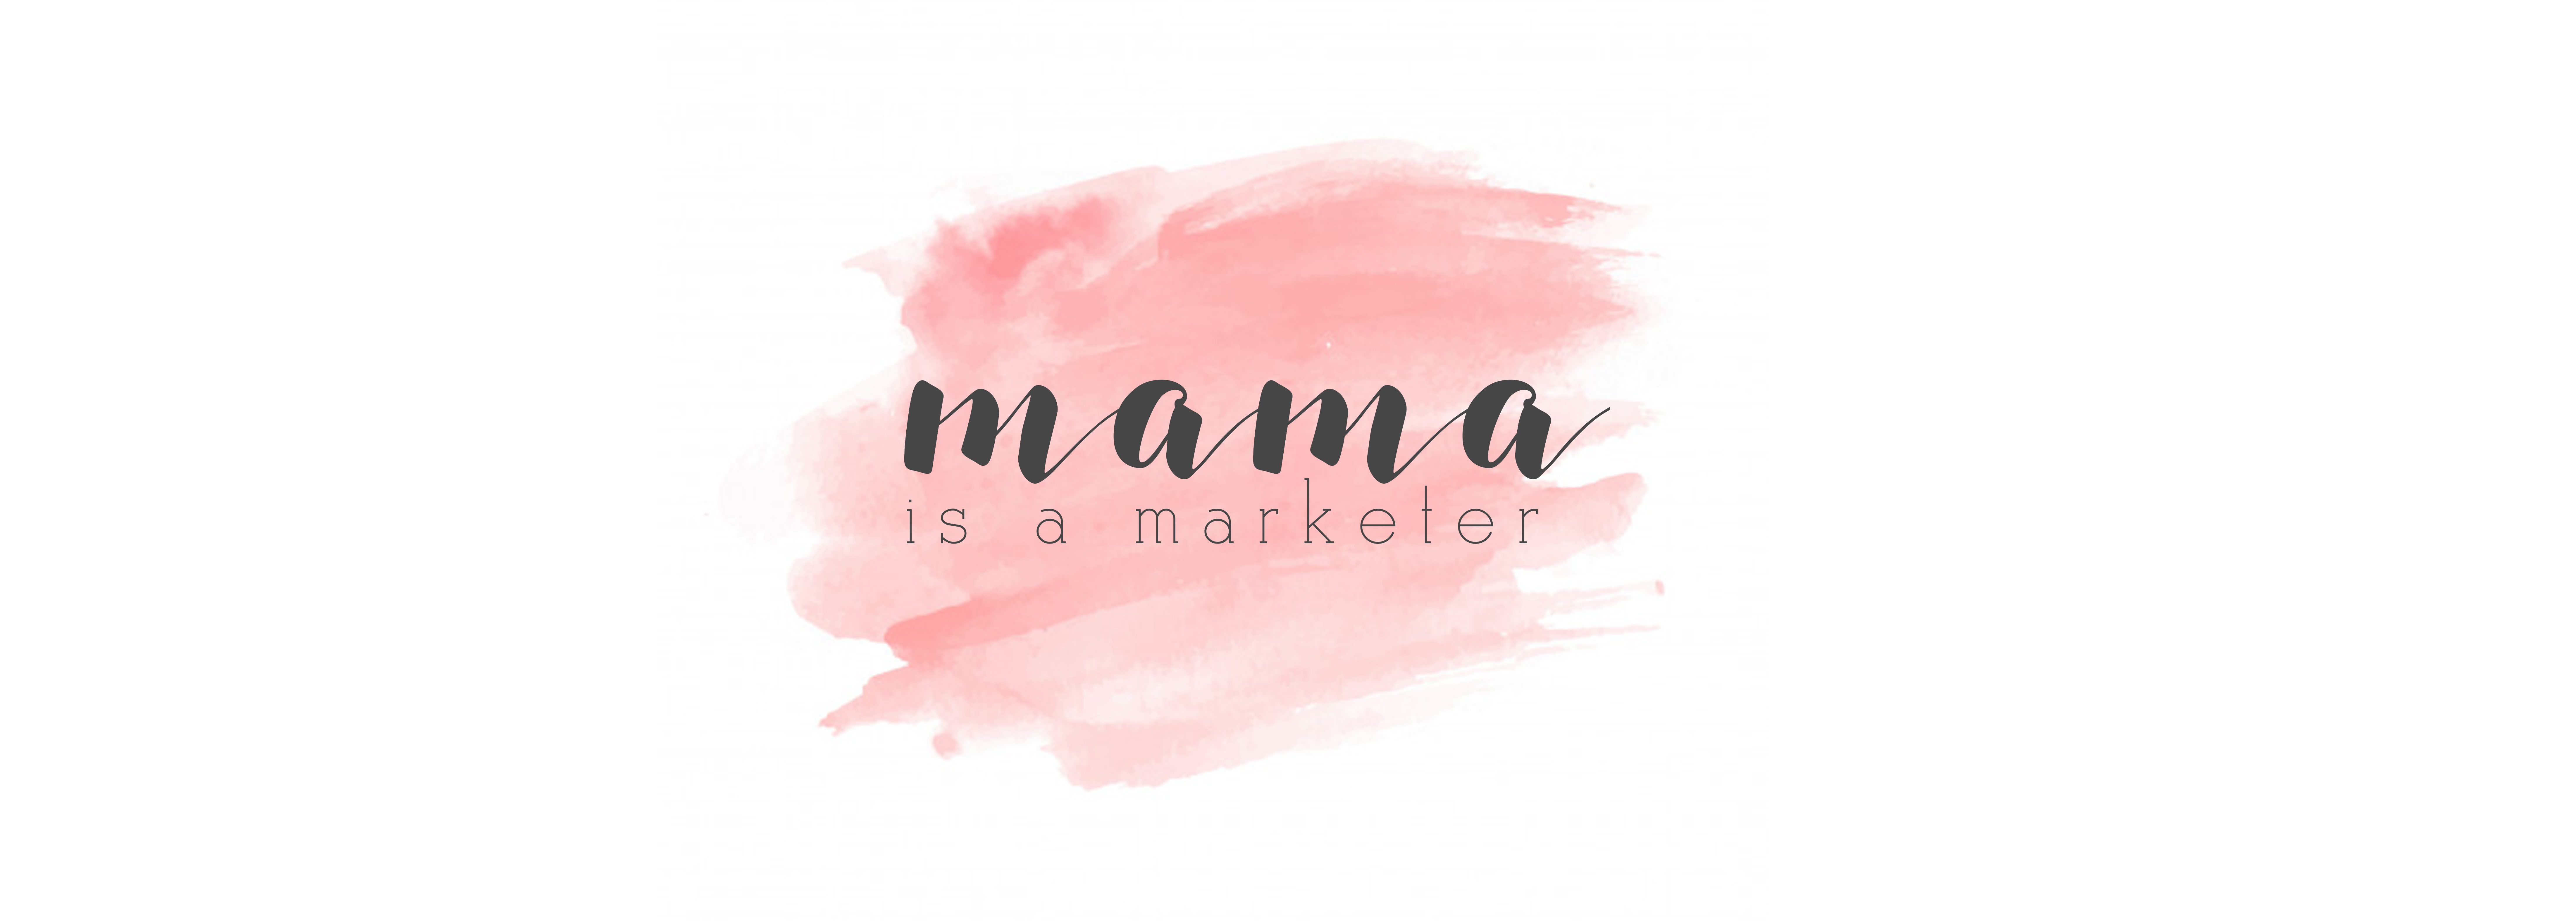 mama is a marketer logo